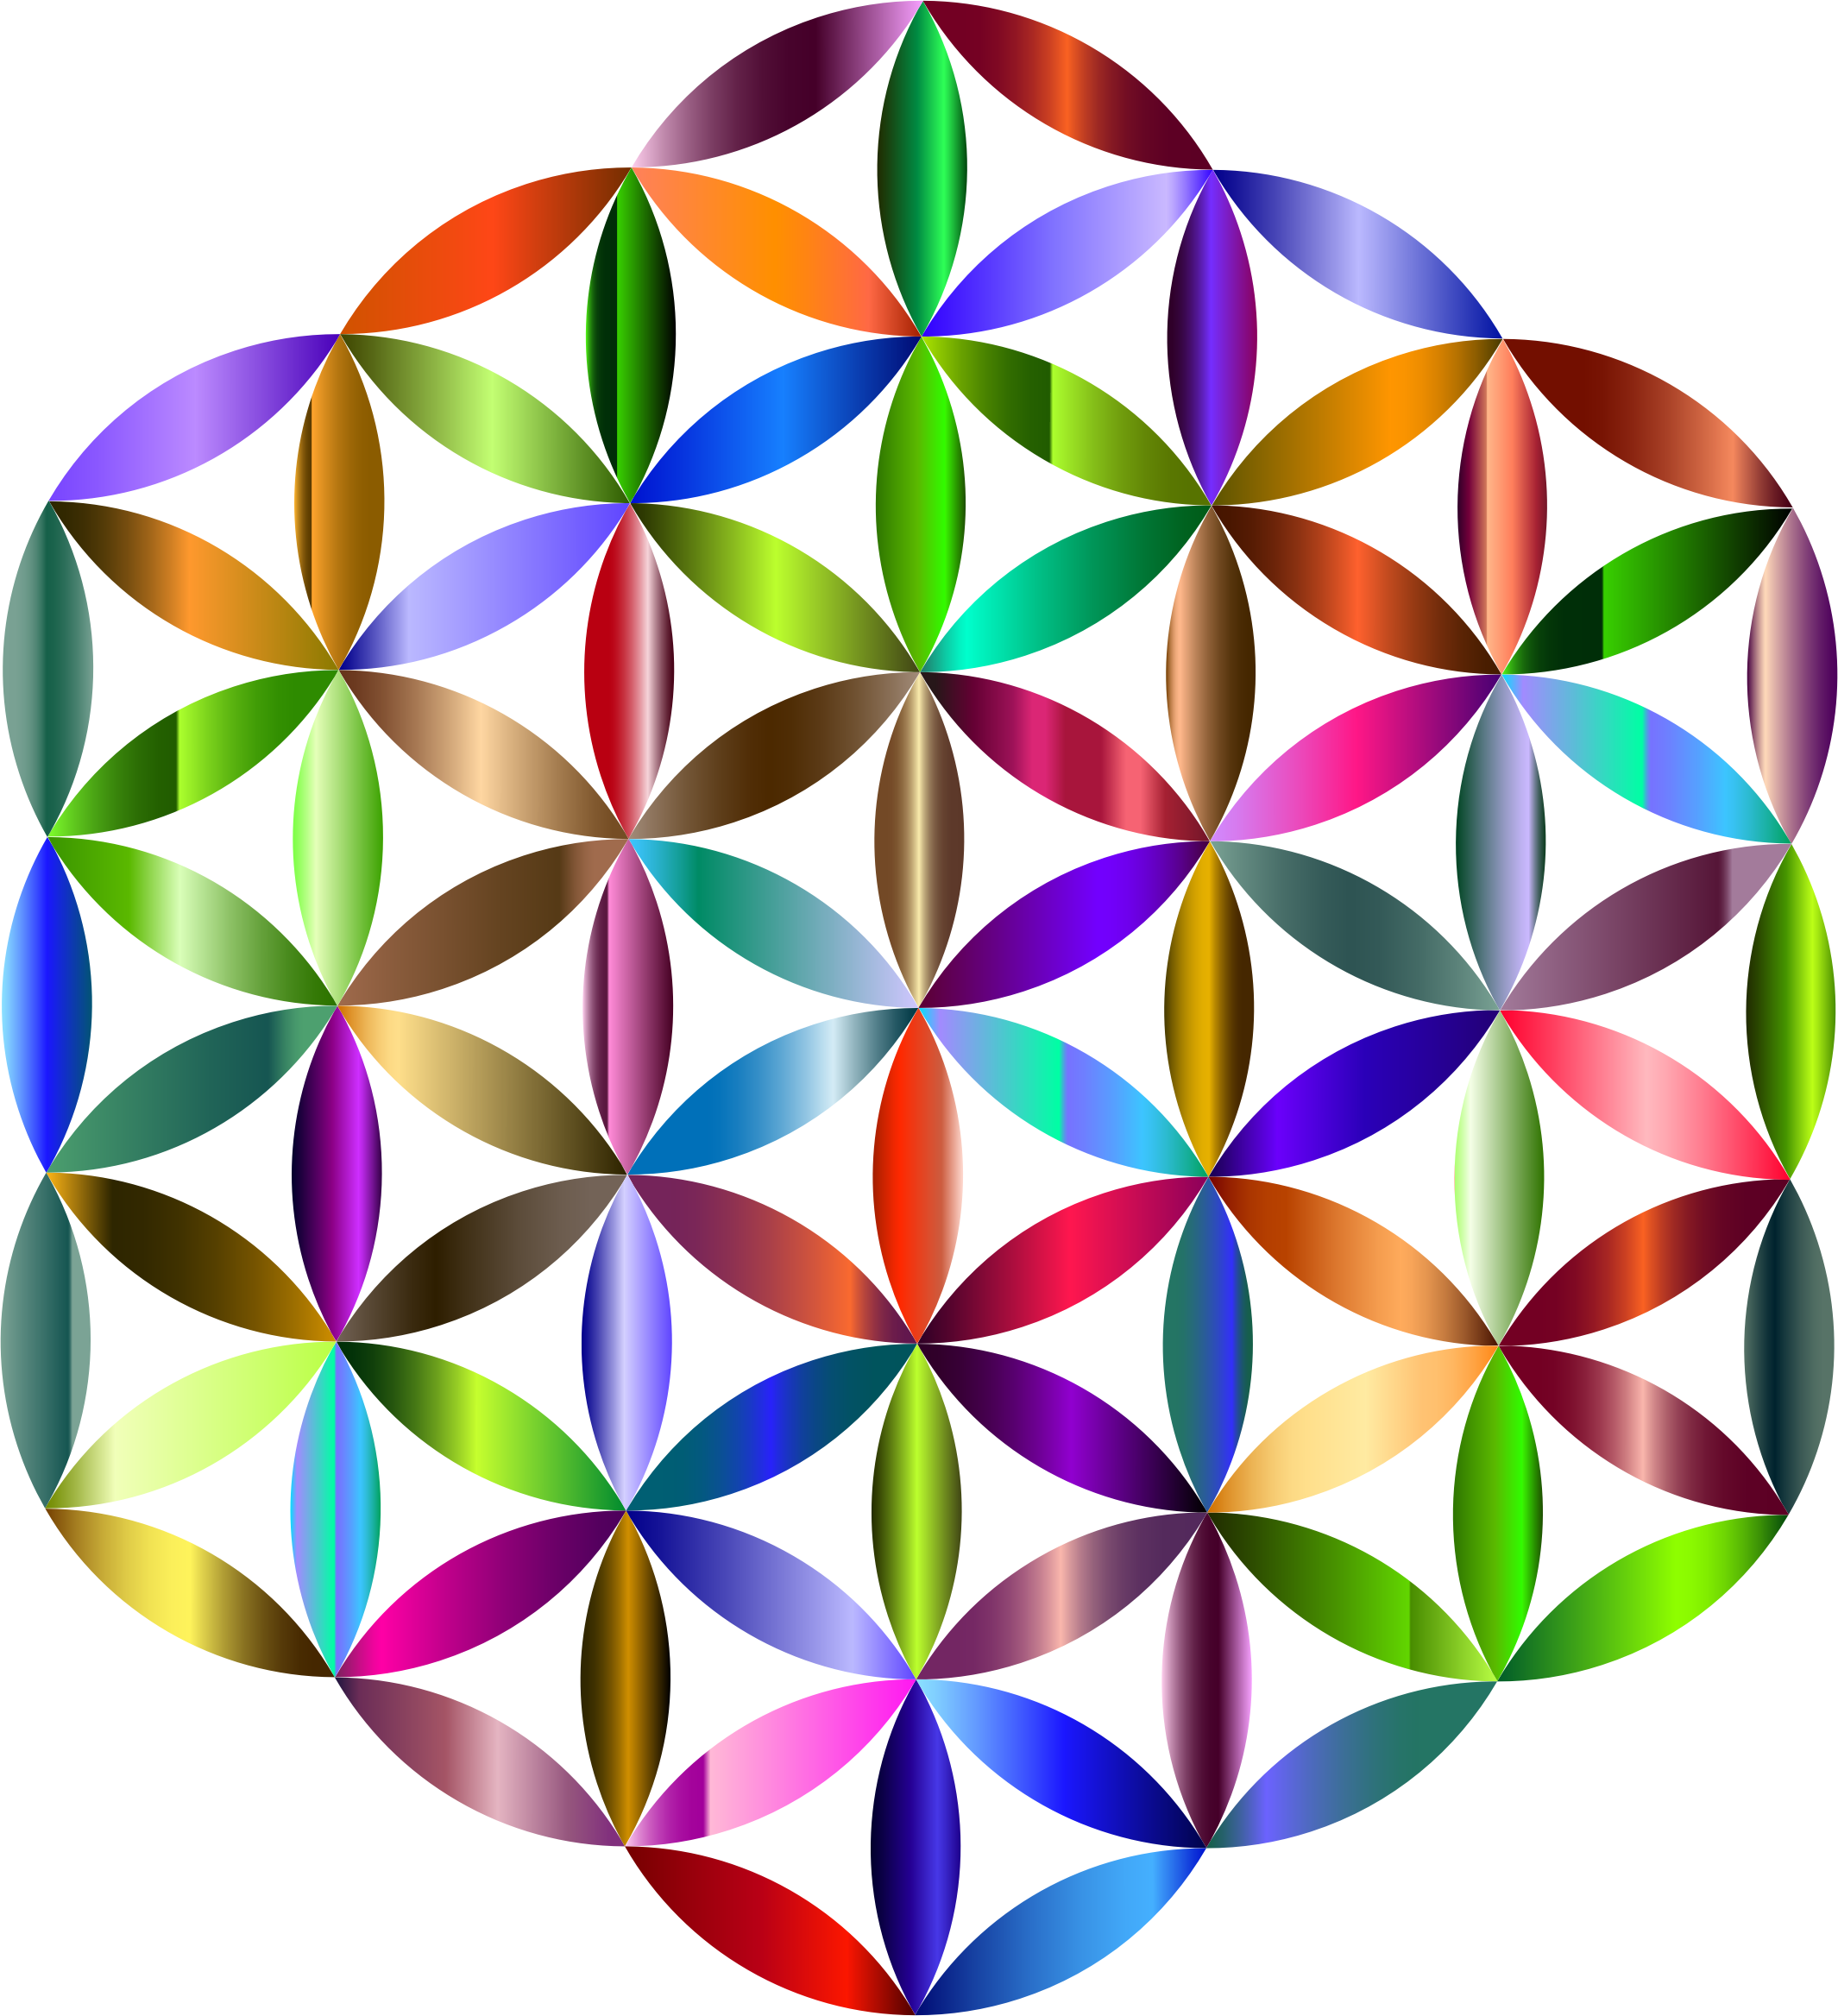 Prismatic Flower Of Life 2 by GDJ